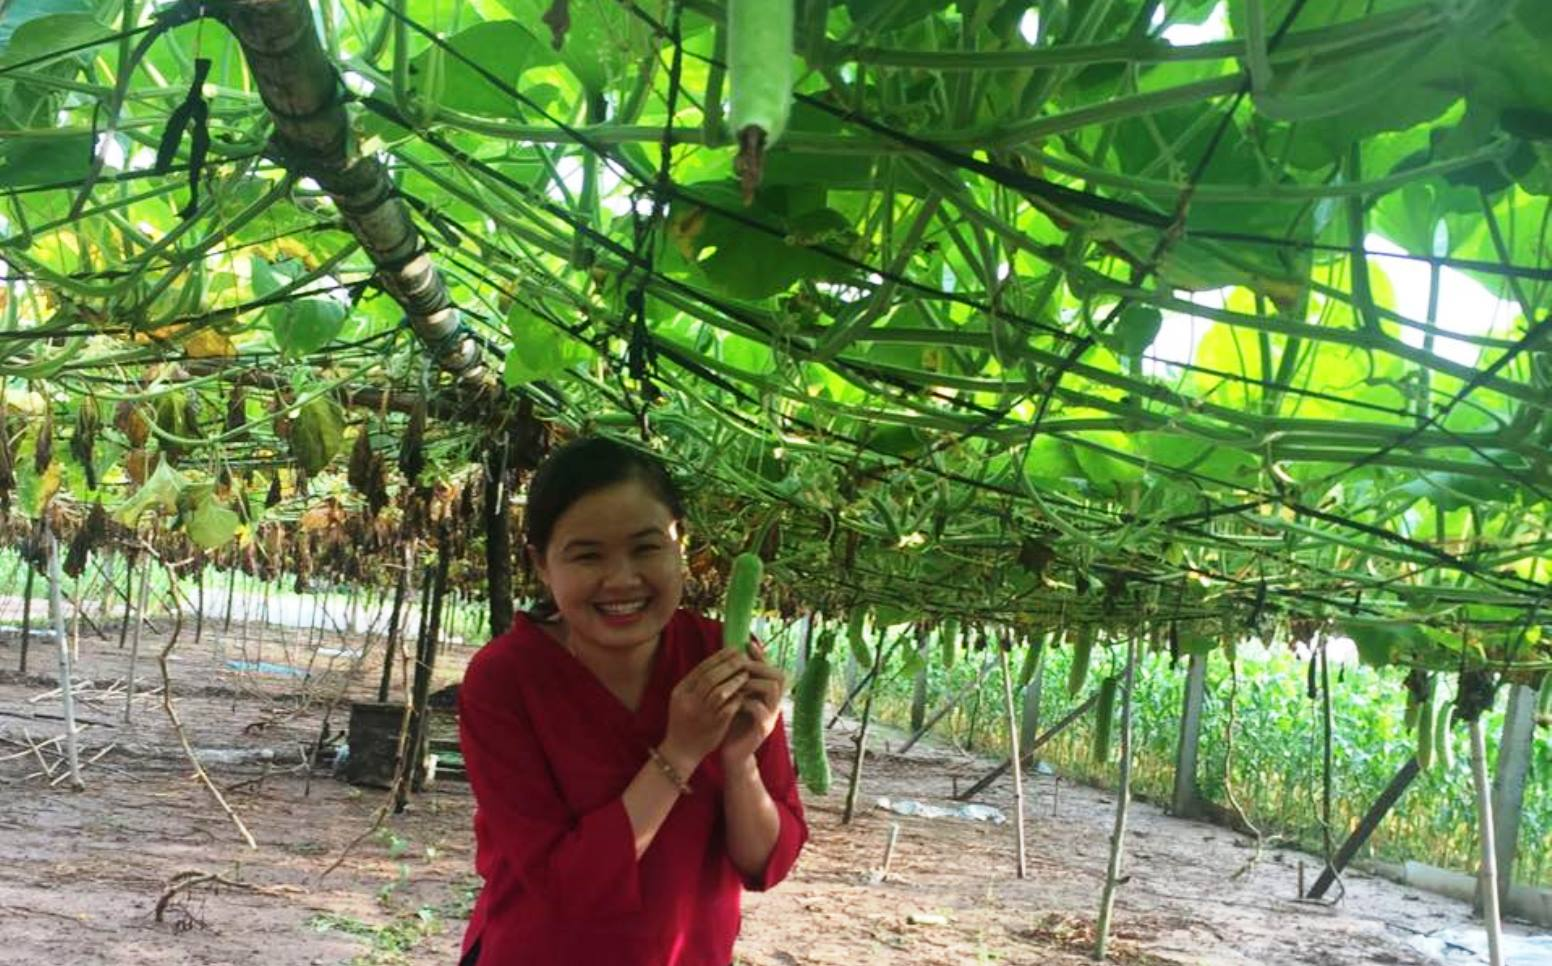 Anh Phung from Vietnam proudly showing her farm's yield after her AICAT training. Photo via Facebook